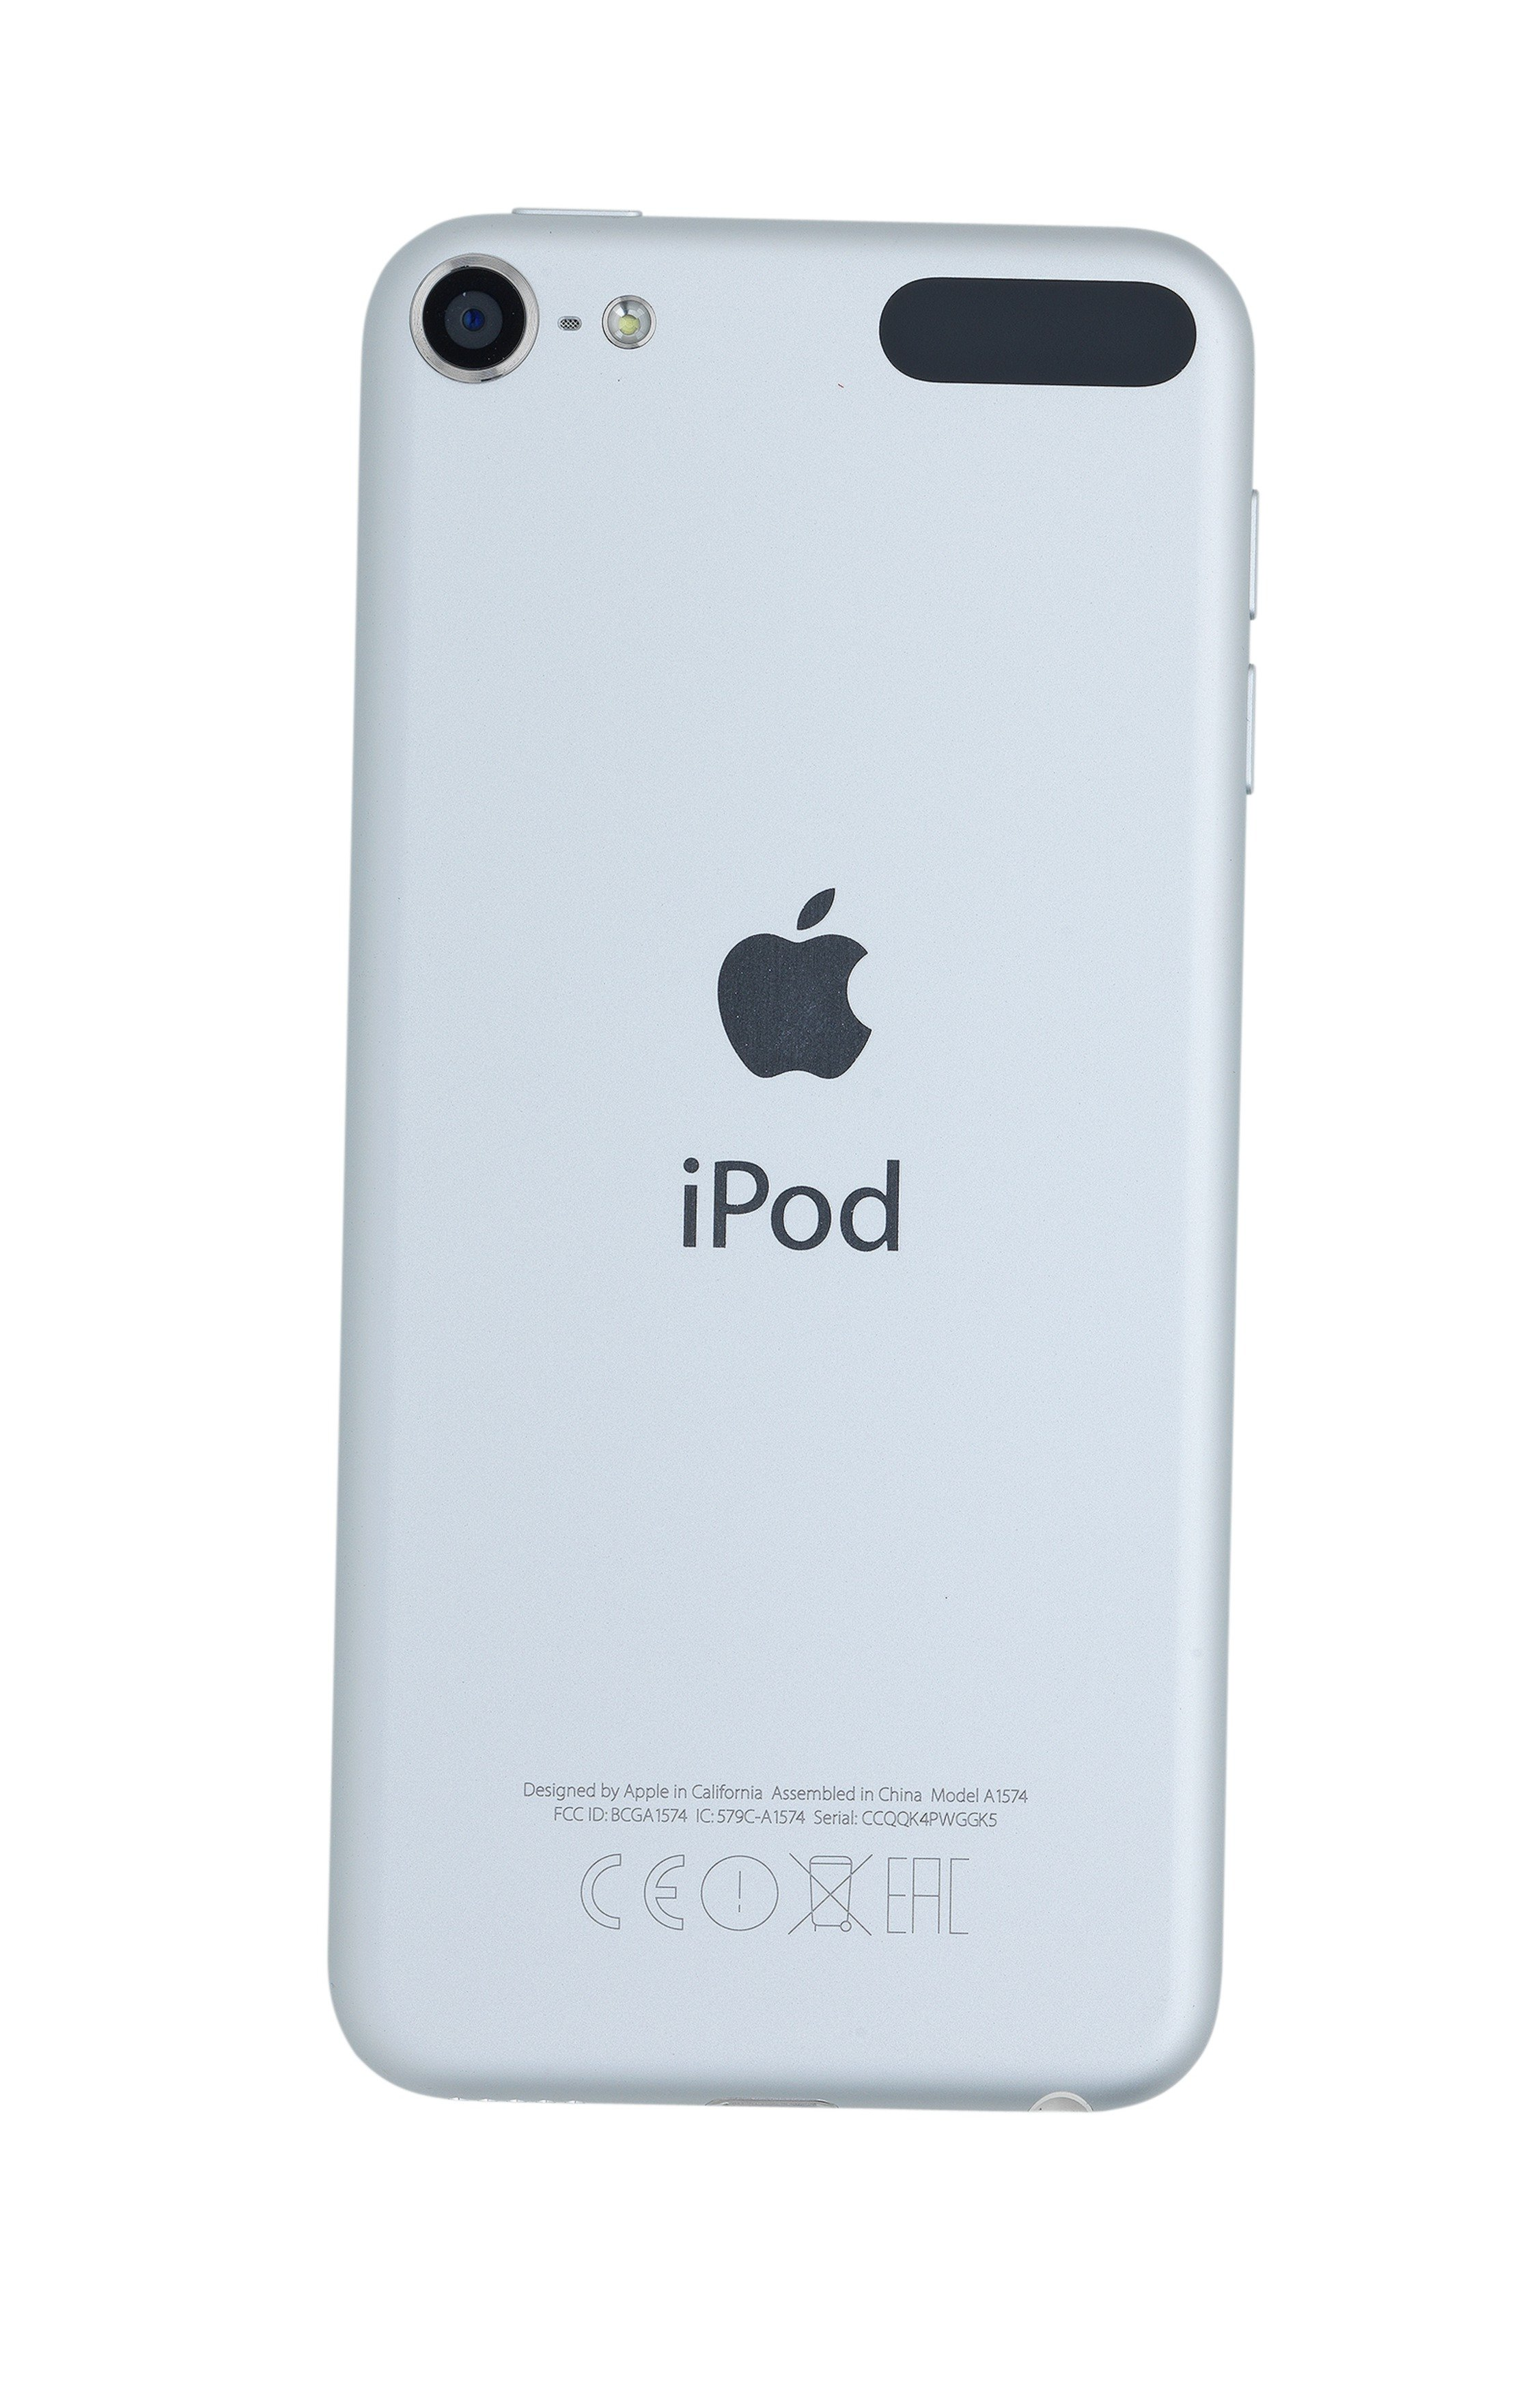 Ipod touch 6th generation release date 2019 in Melbourne